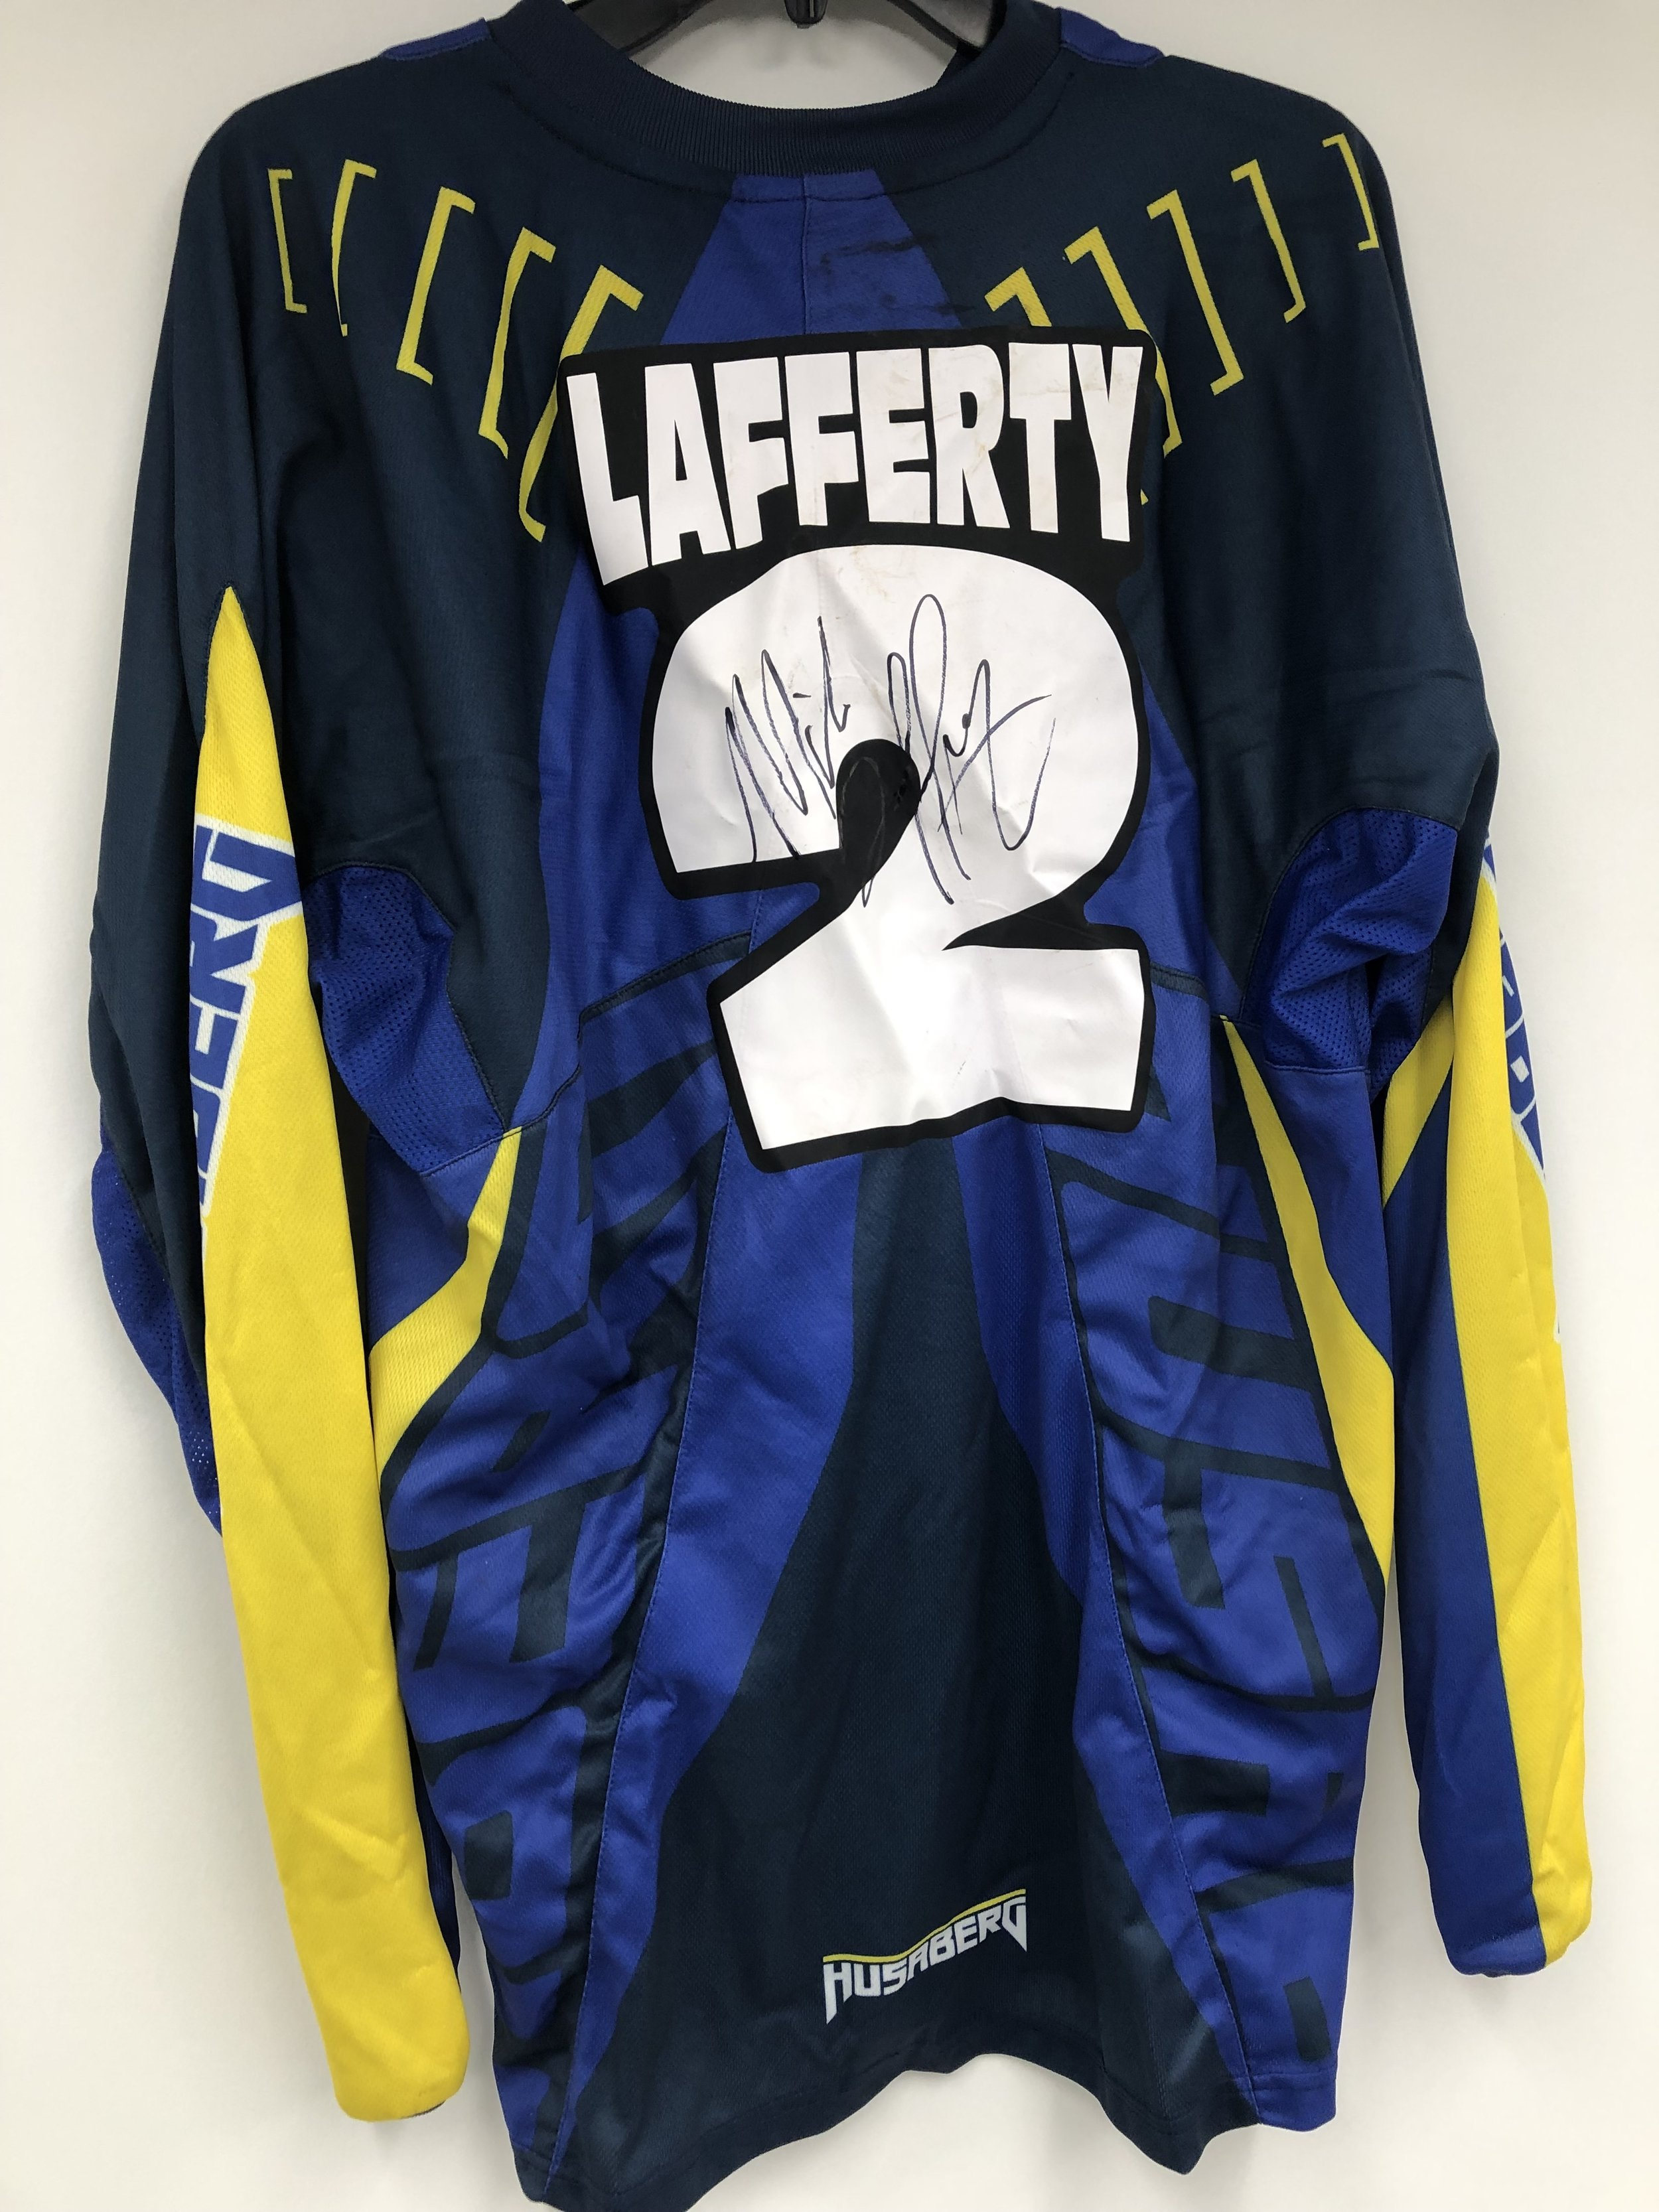 Click the image to bid on Mike Lafferty Husaberg Jersey